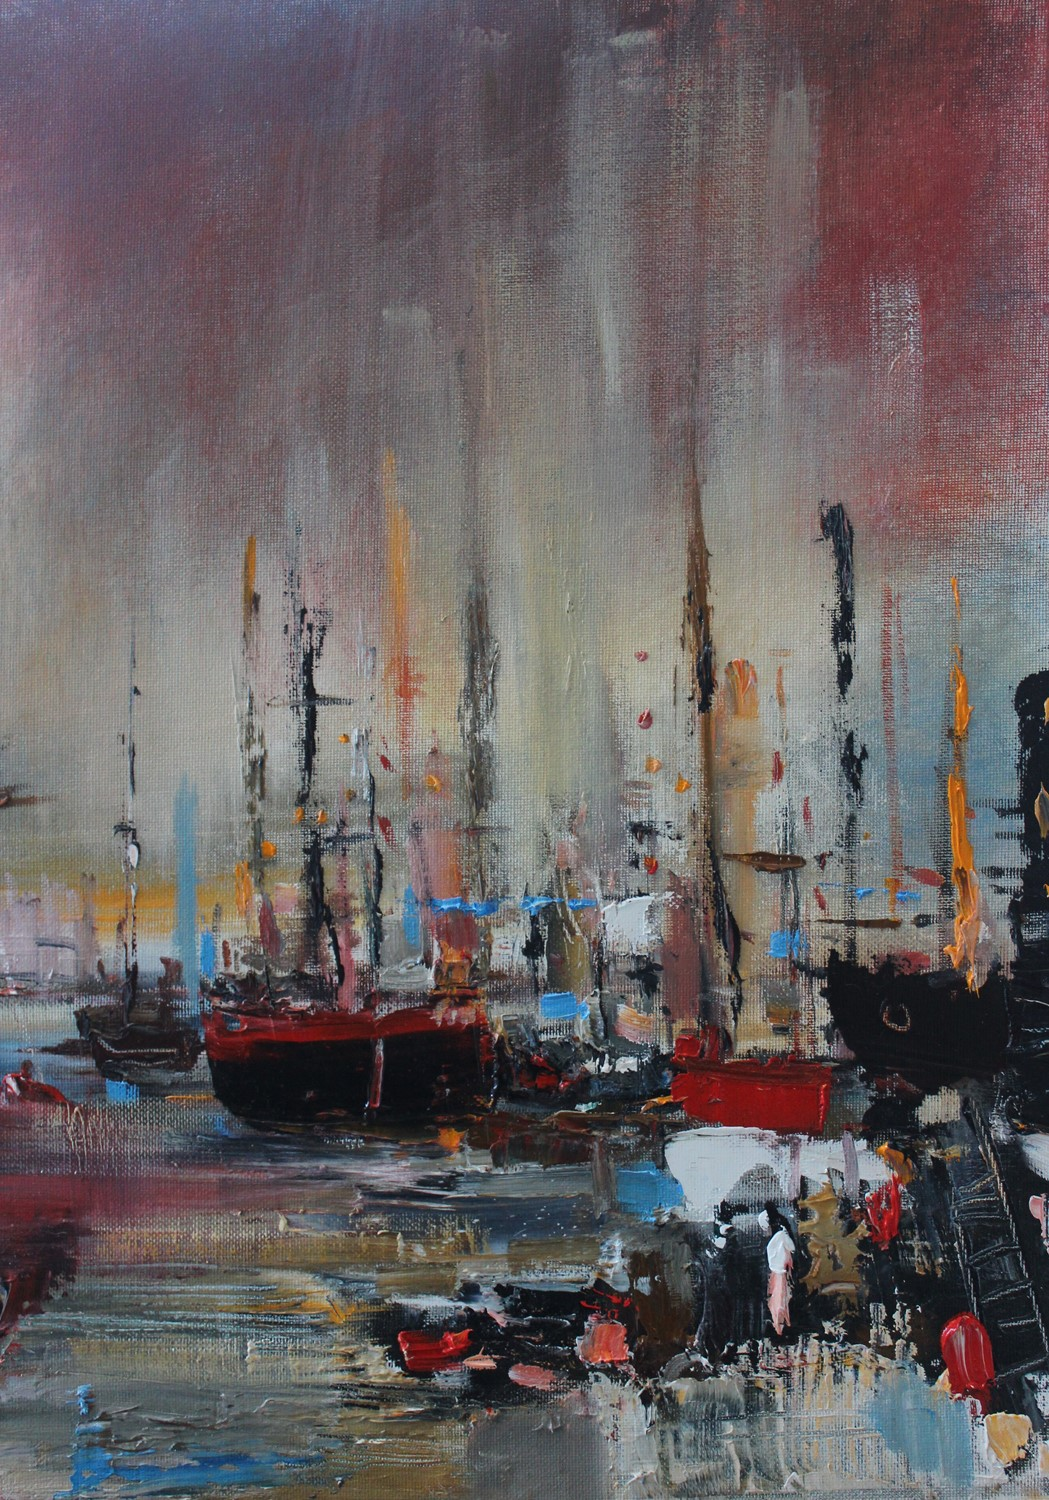 'Night Harbour' by artist Rosanne Barr